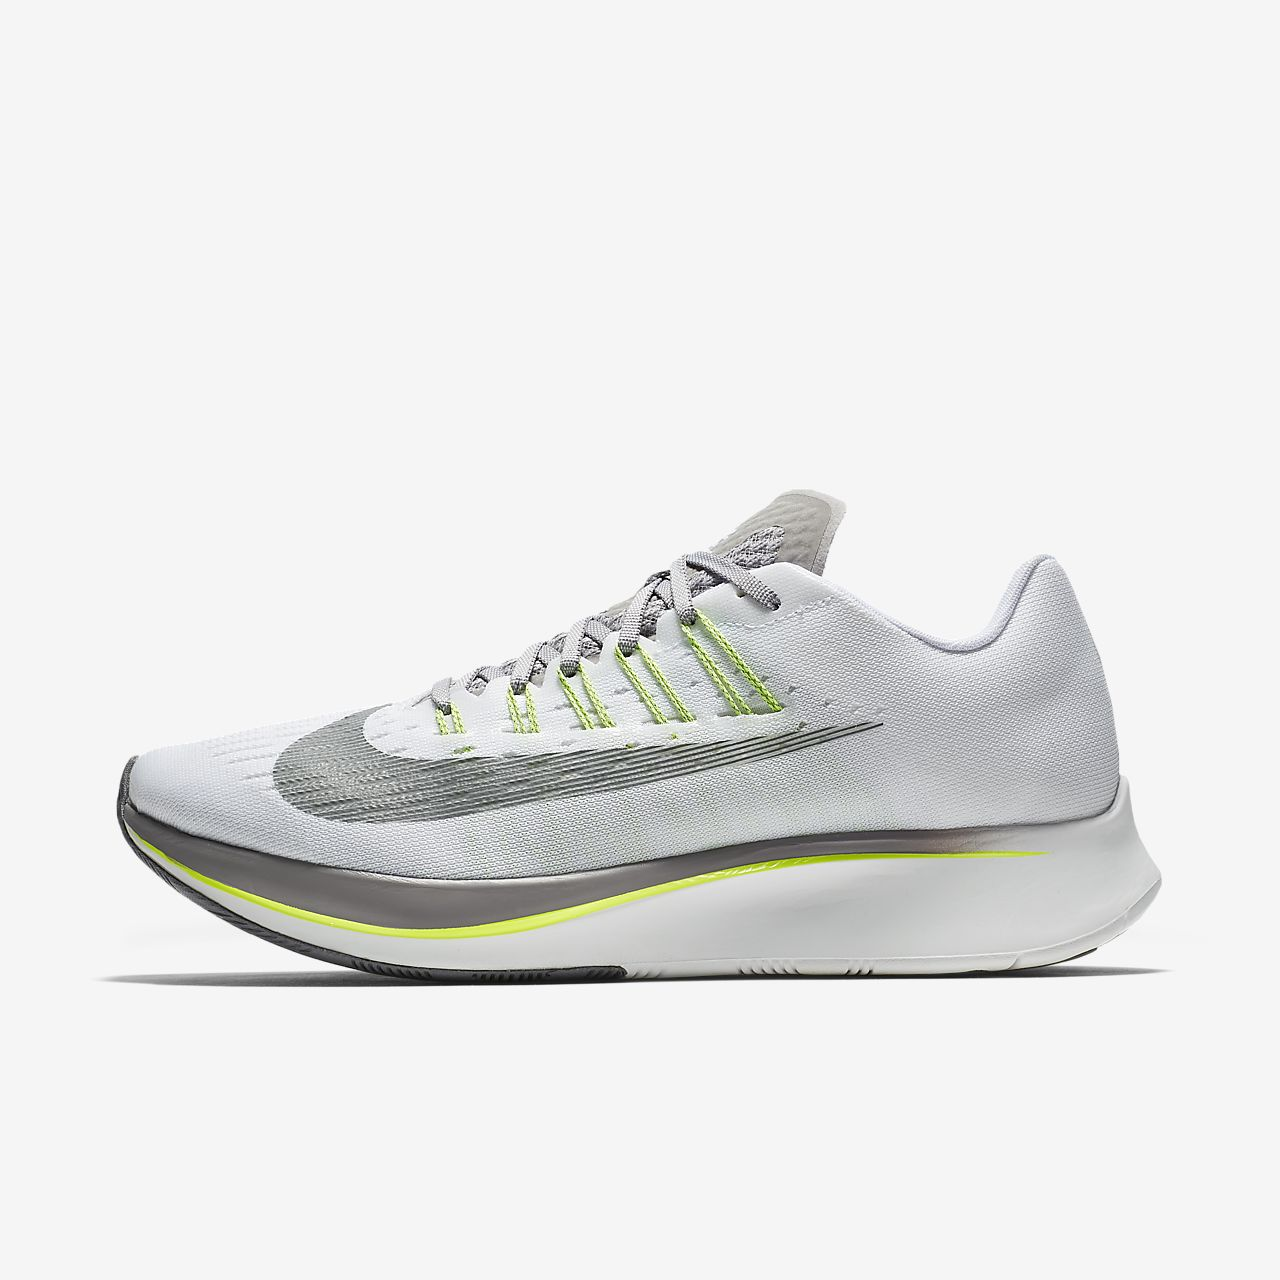 a3f032628d4b Nike Zoom Fly Men s Running Shoe. Nike.com